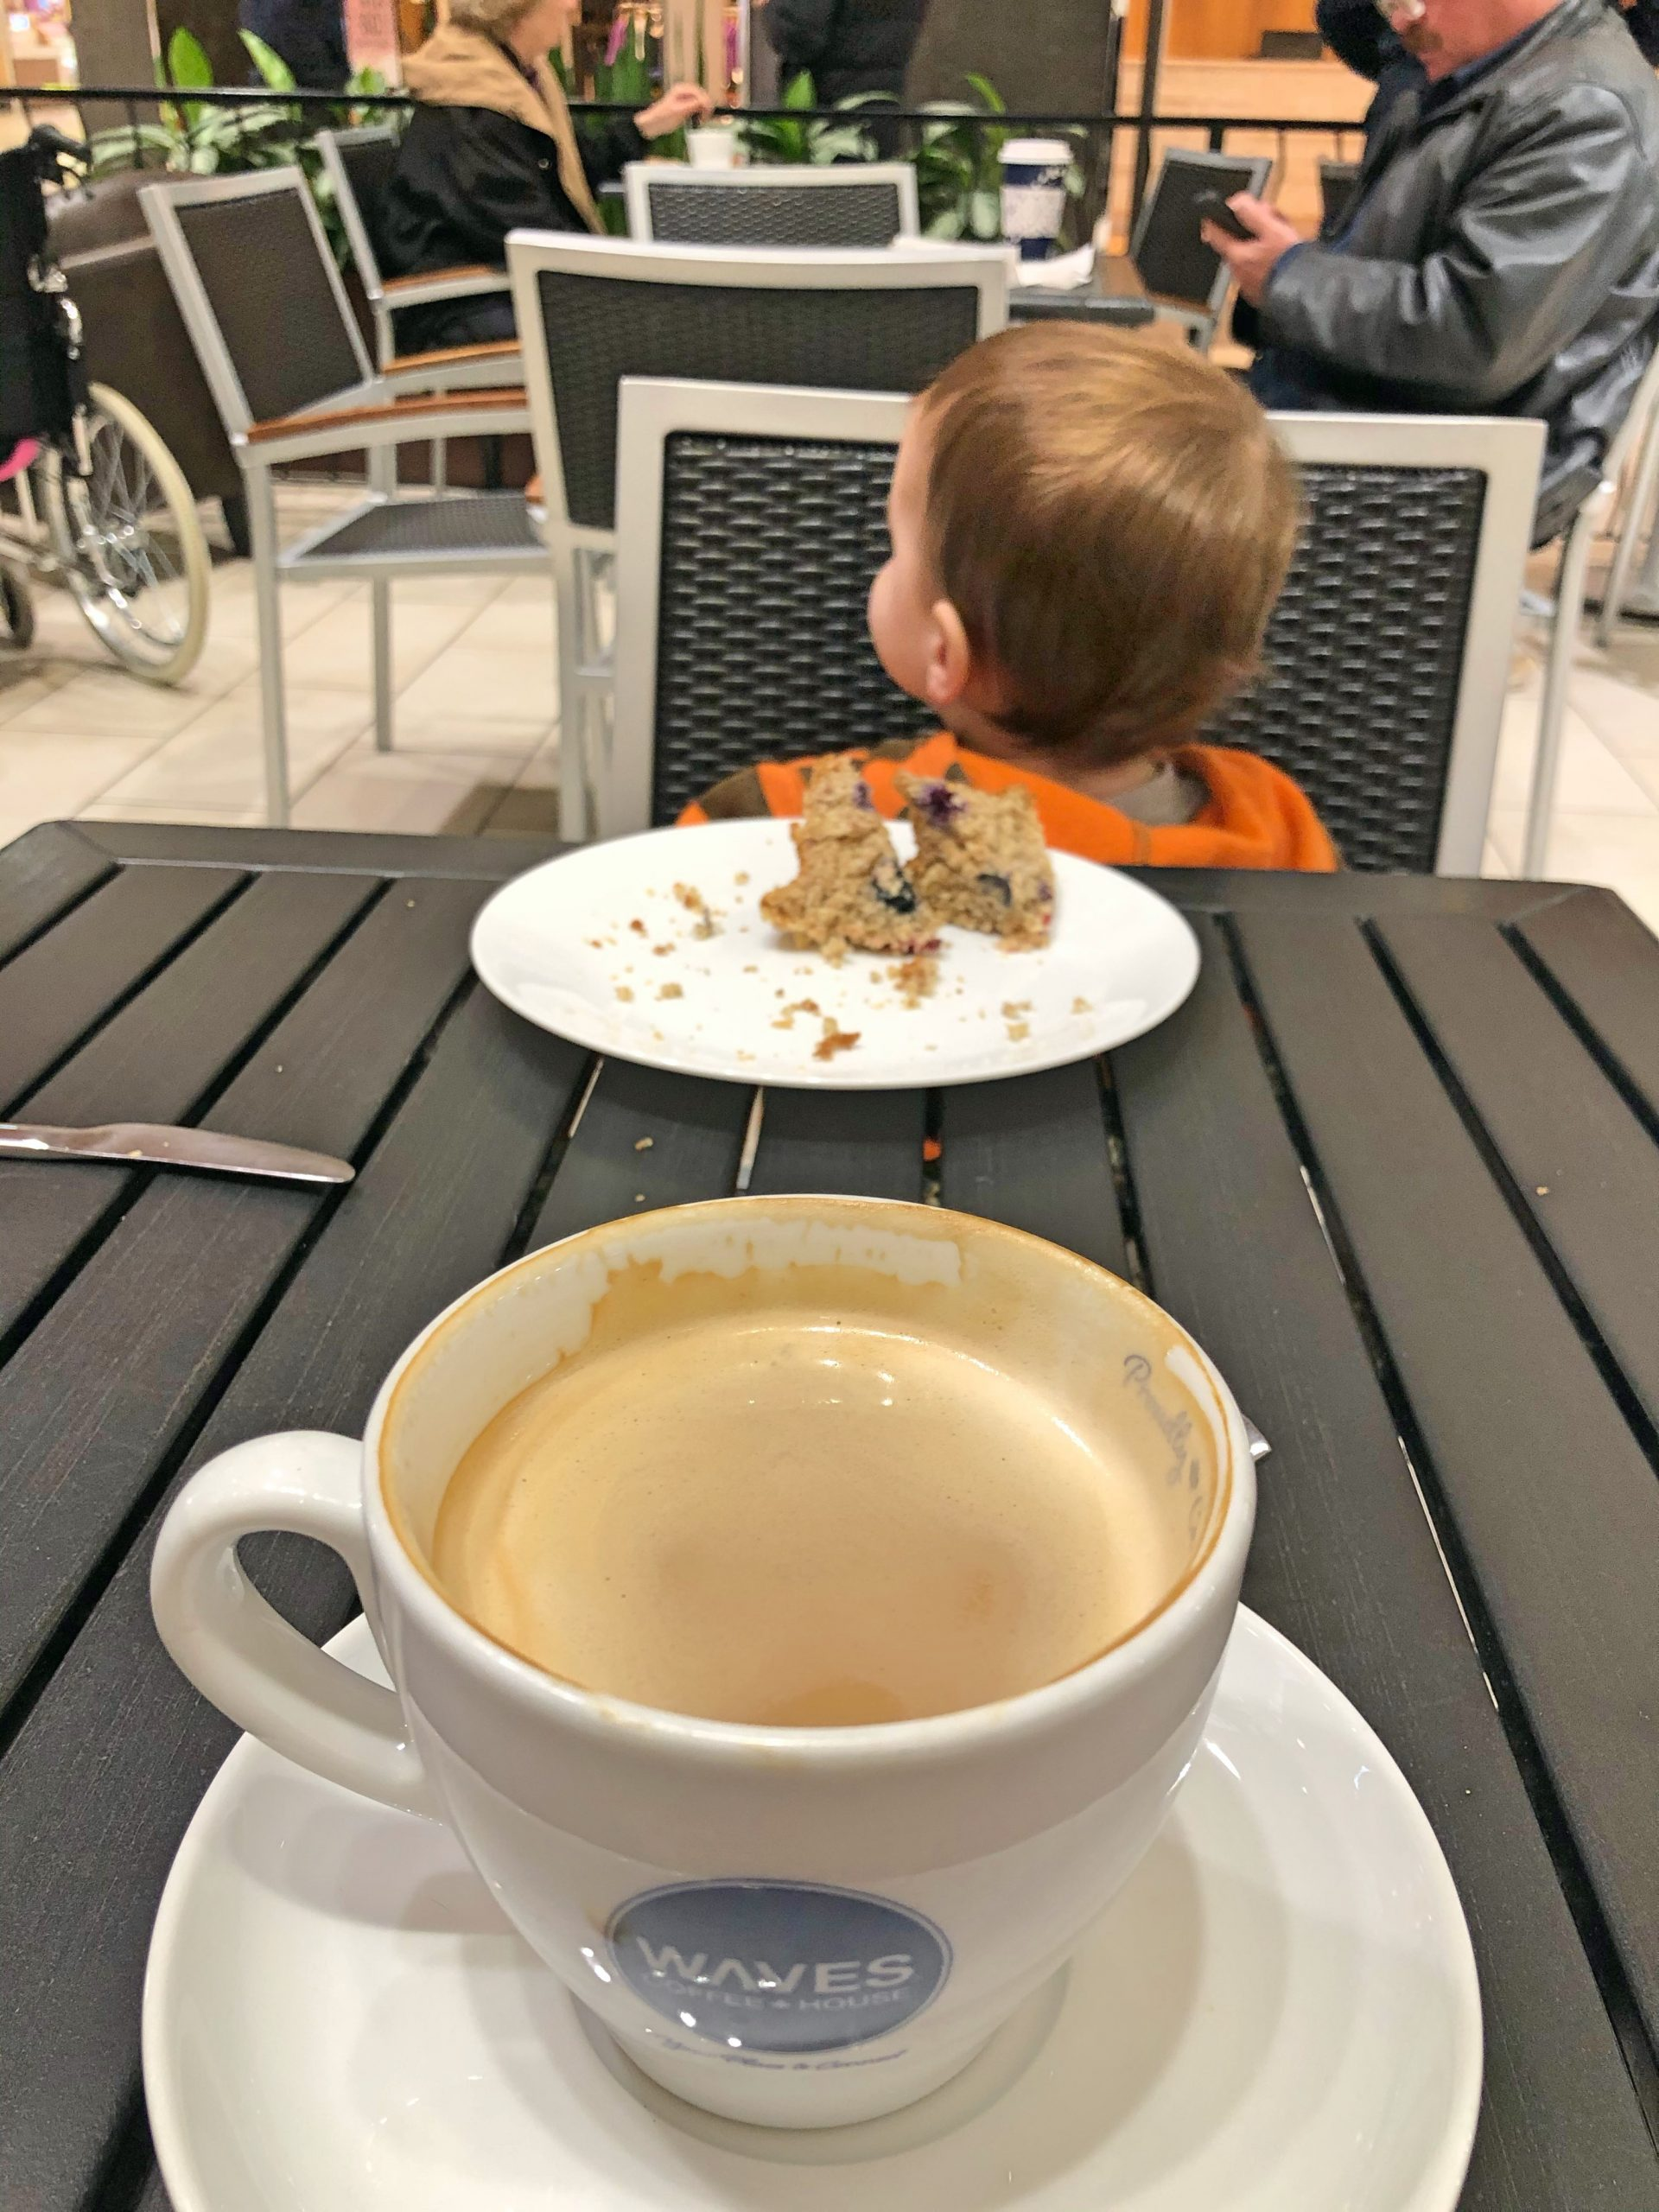 Coffee Date at Waves with Toddler